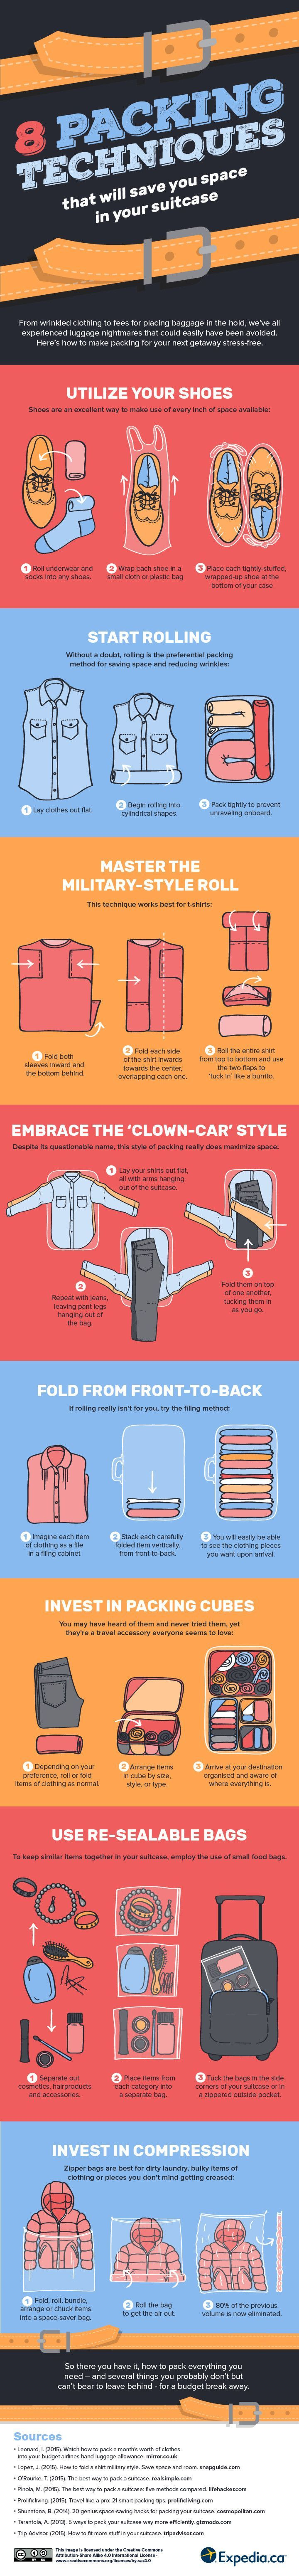 8 Suitcase Hacks For Frequent Travellers [Infographic] | Lifehacker Australia